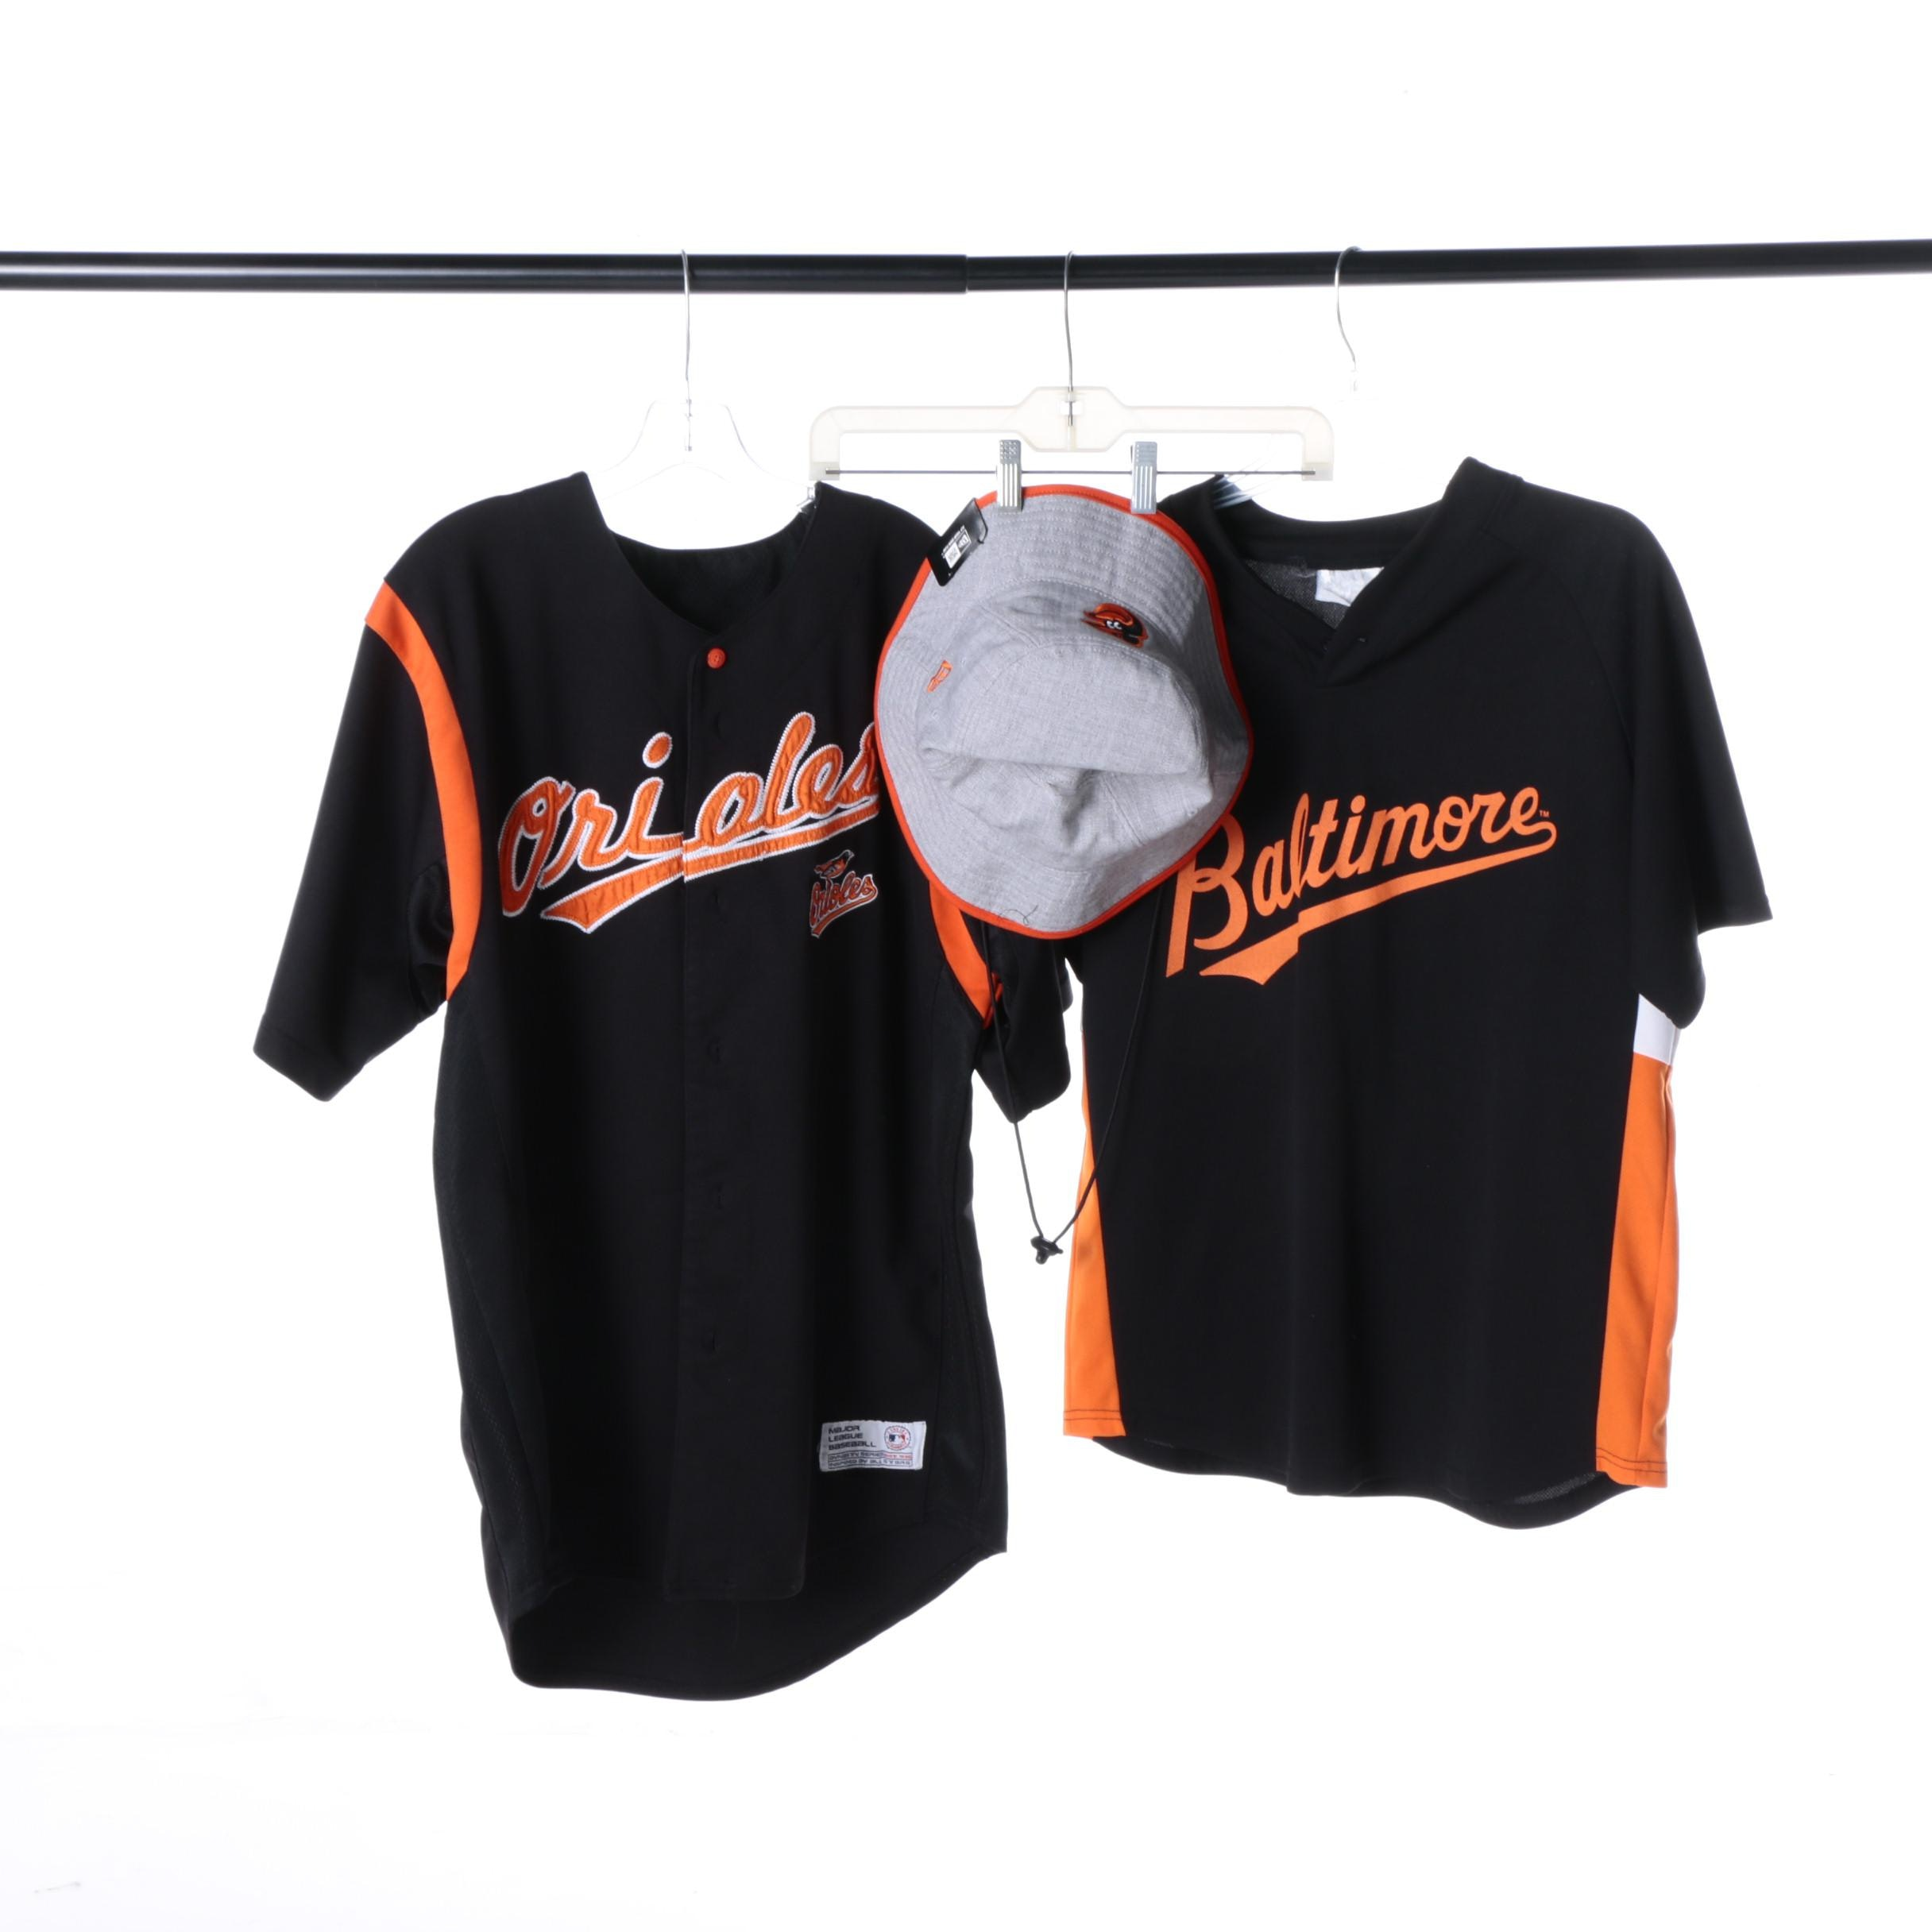 Men's Baltimore Orioles Shirts and Bucket Hat